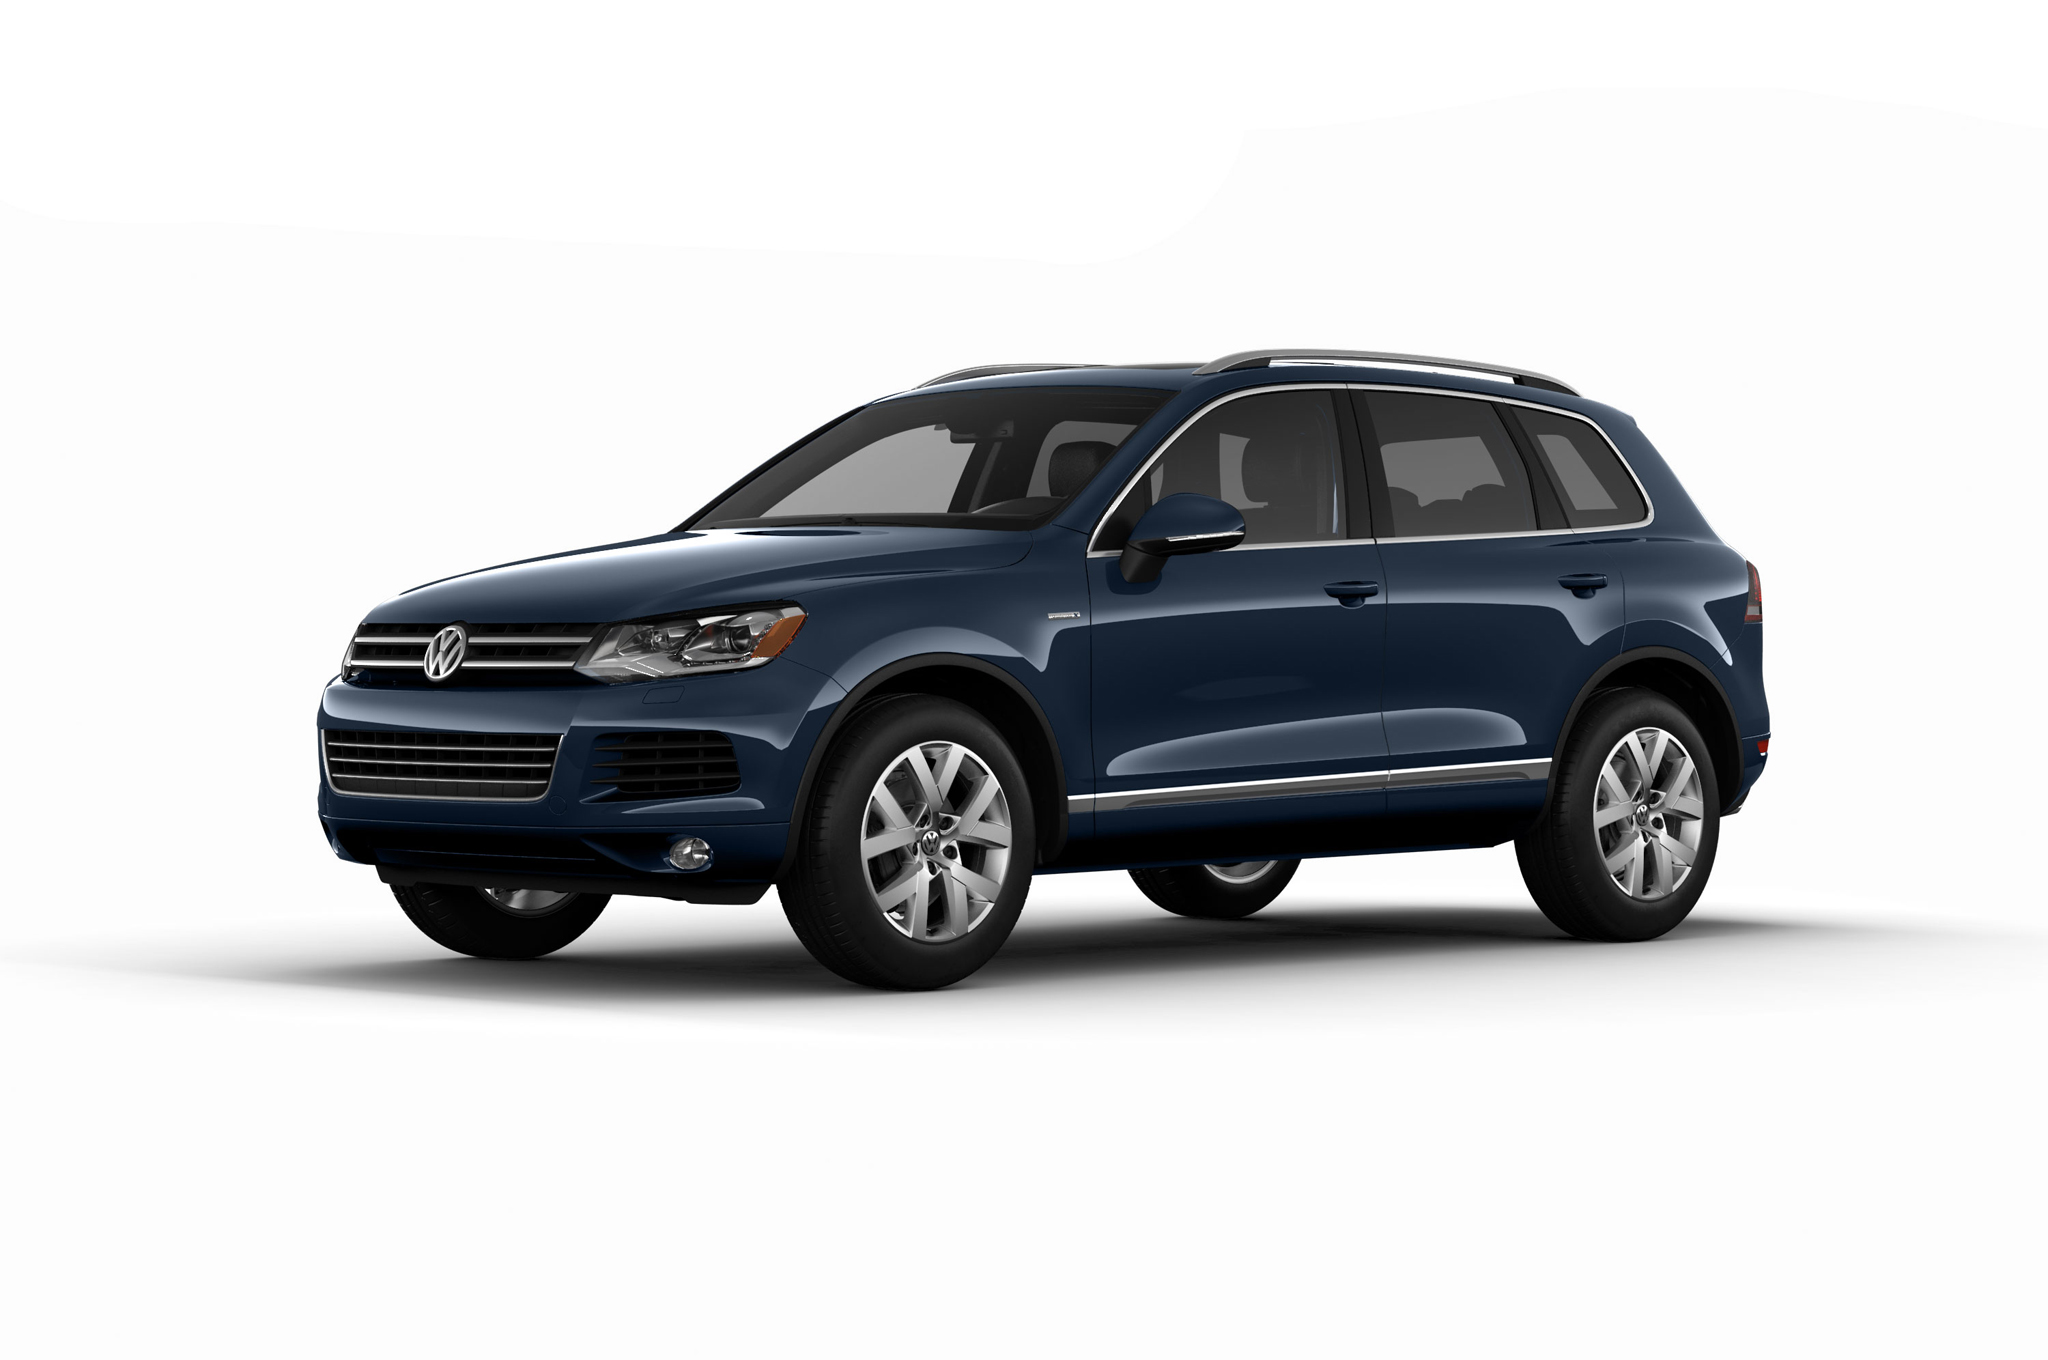 2019 Volkswagen Touareg Edition X photo - 2